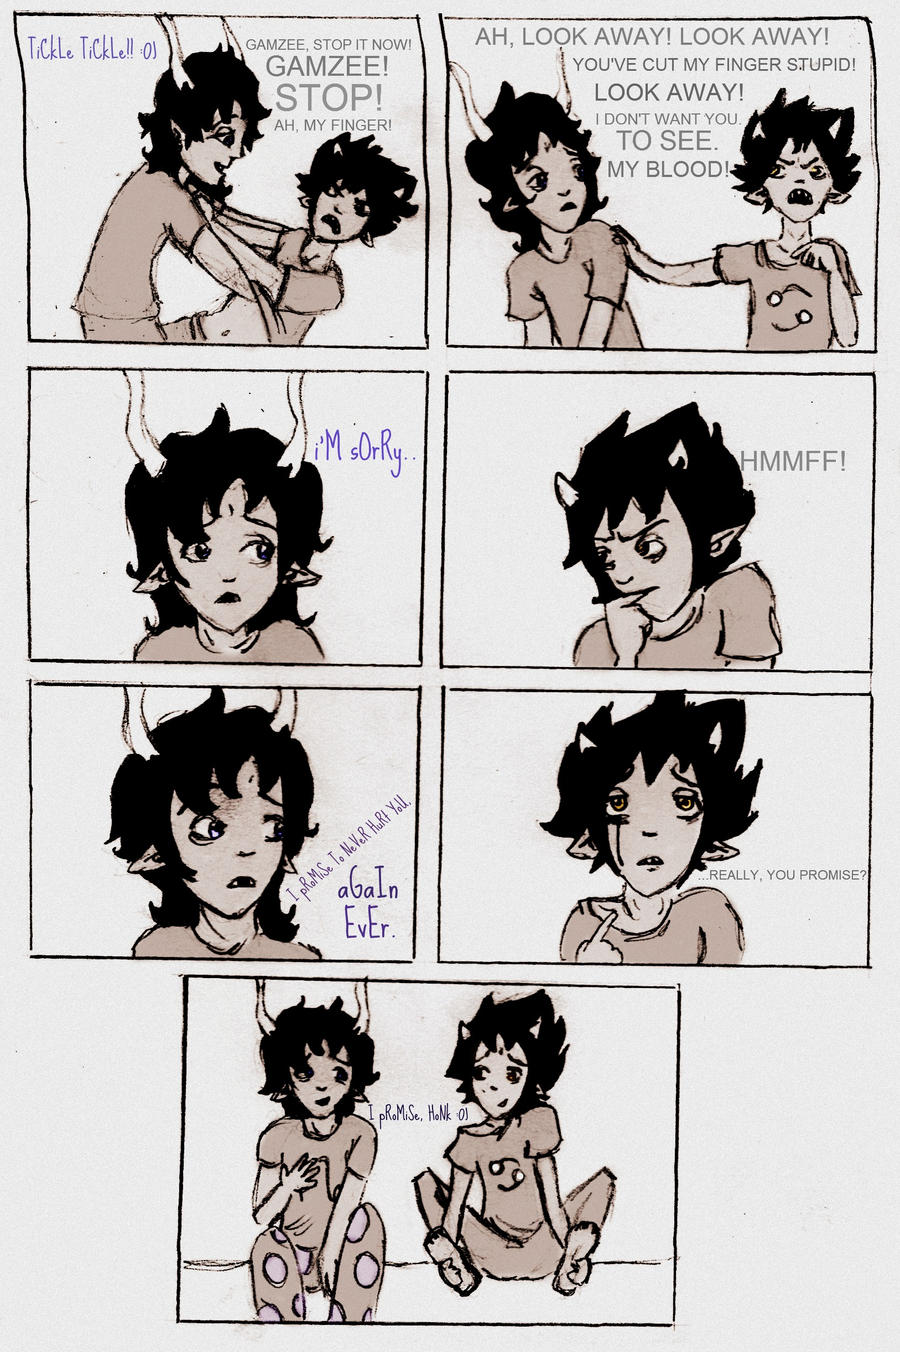 Gamzee Can't Keep Promises by RosaZaira